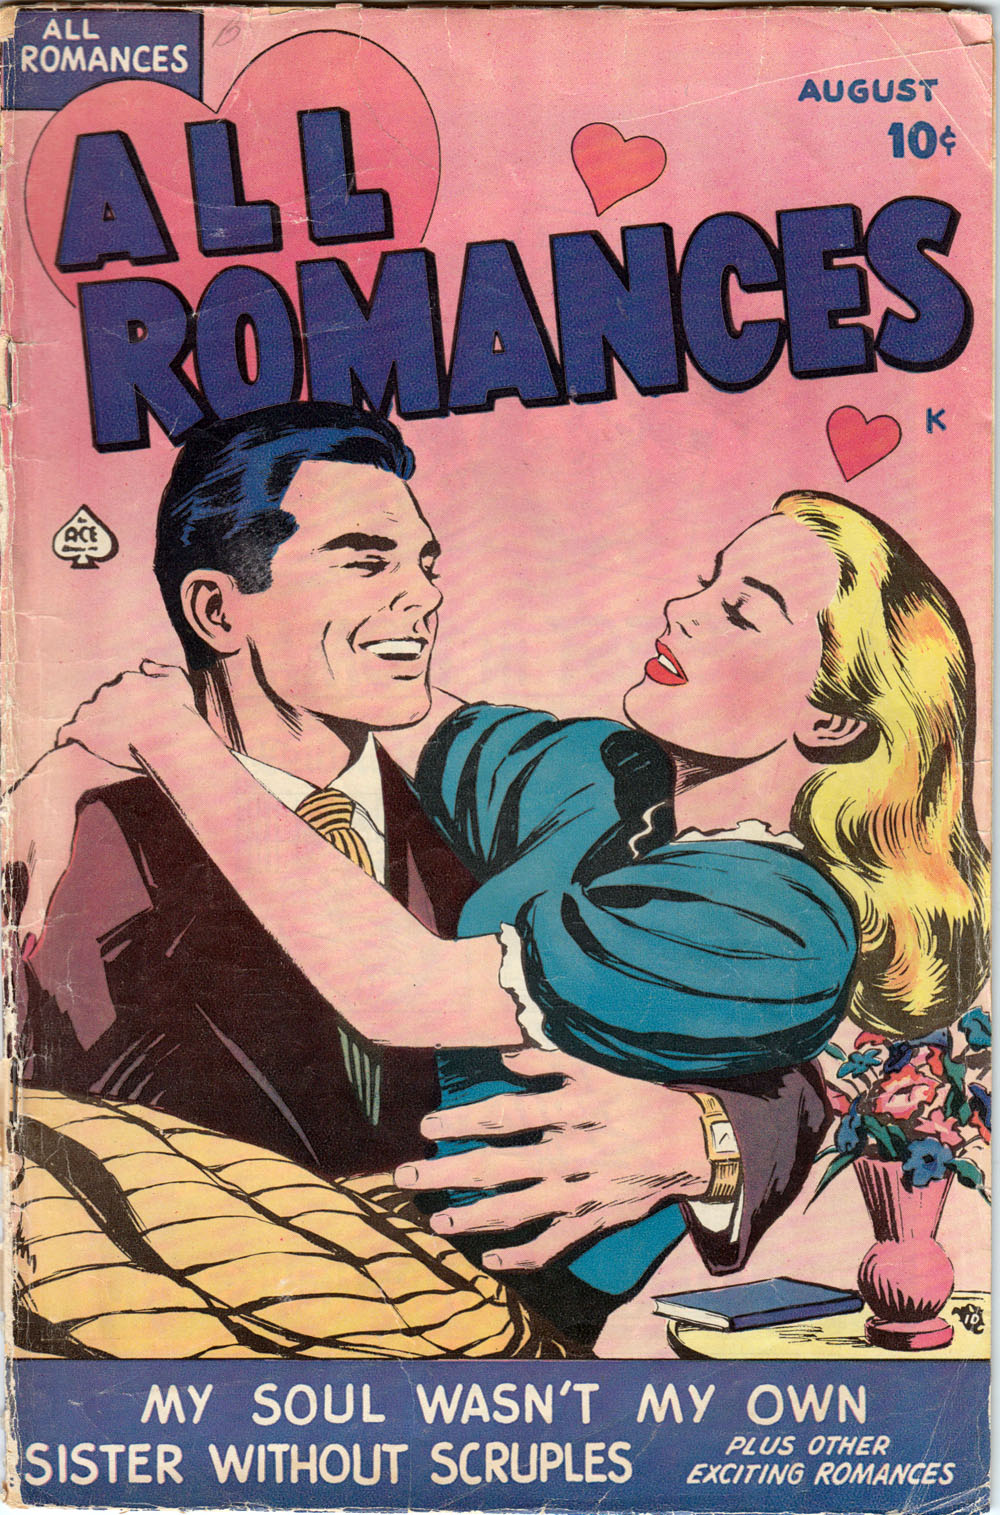 Art---possibly penciled and inked by Alice Kirkpatrick. All Romance #1, 1949.